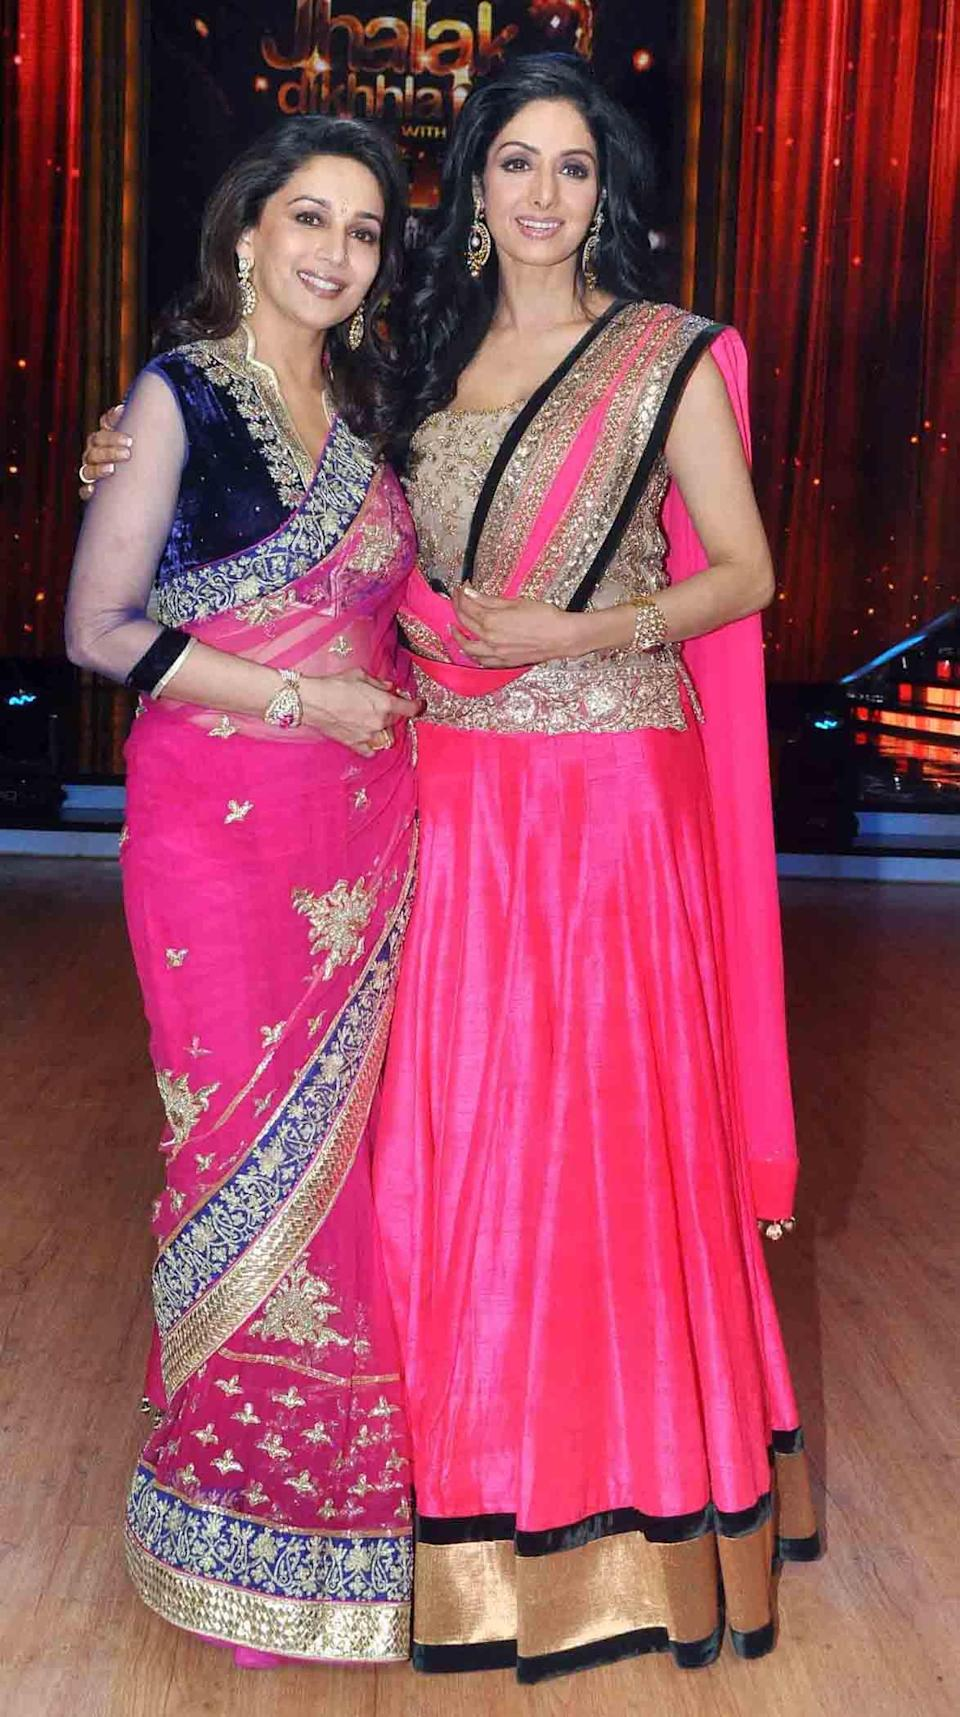 Pics: Sridevi with friends and family